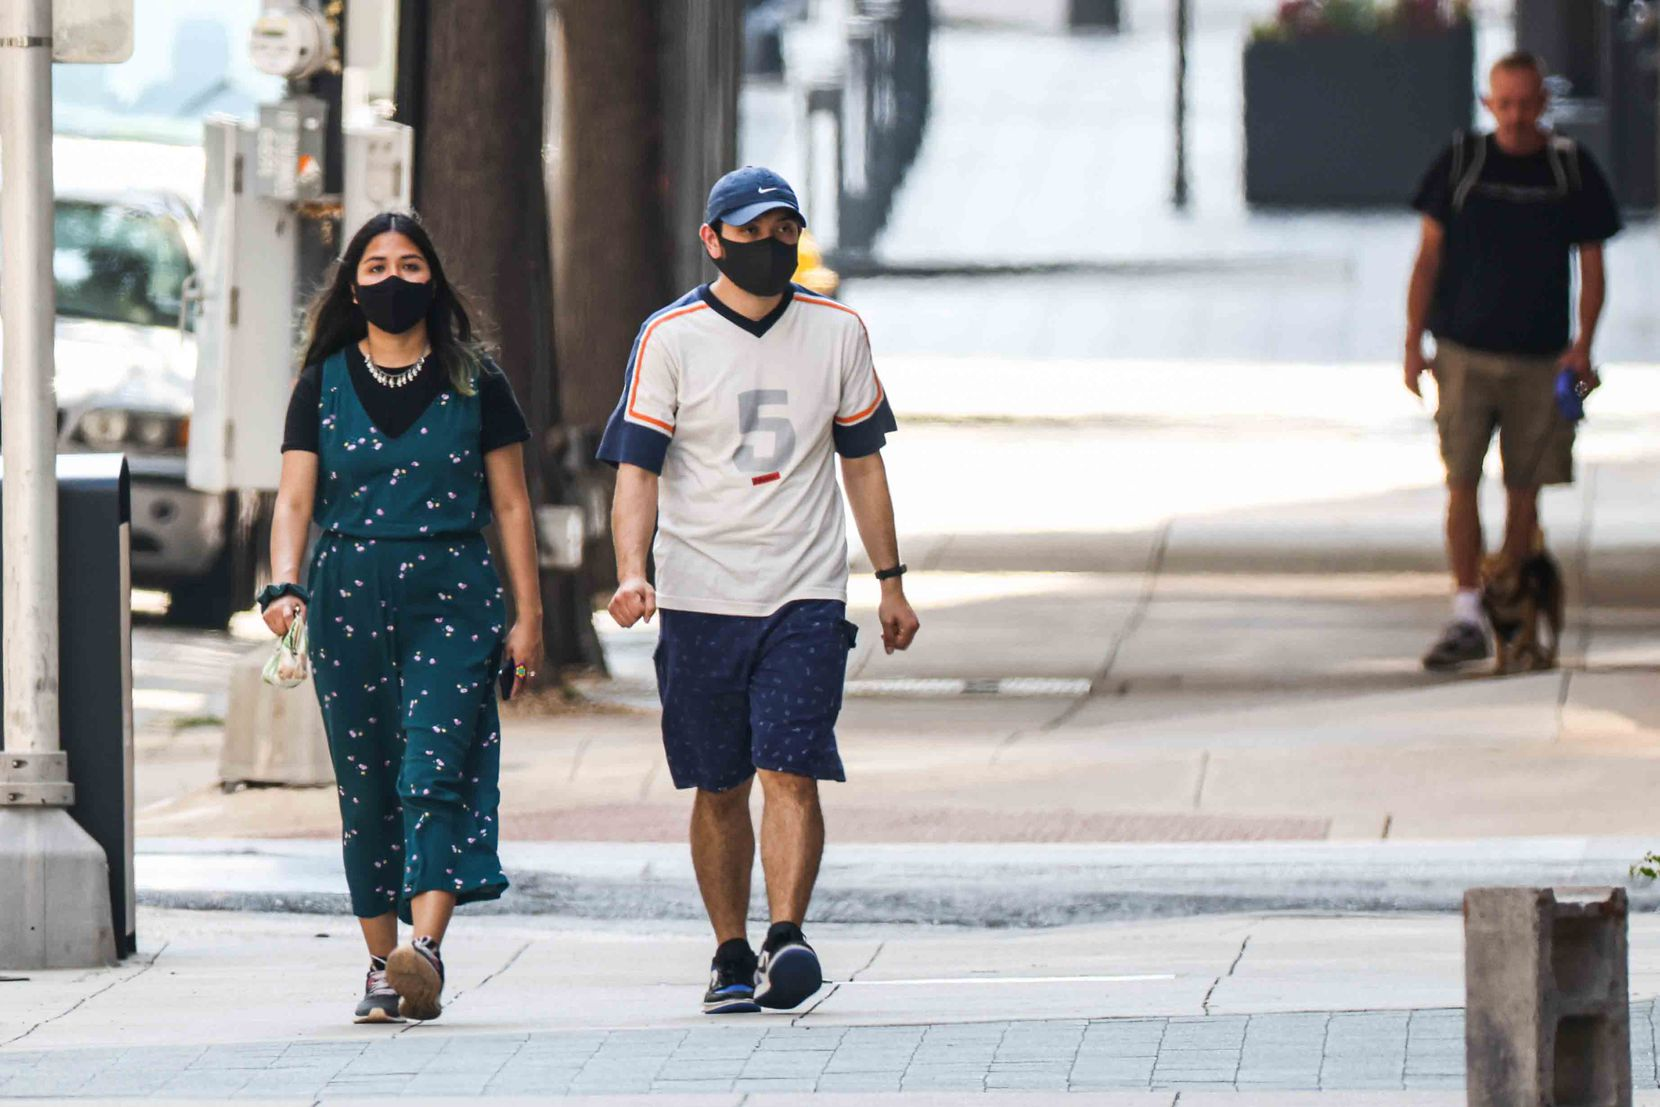 To mask or not to mask: Some pedestrians in downtown Dallas were taking extra precautions Wednesday while others were not.